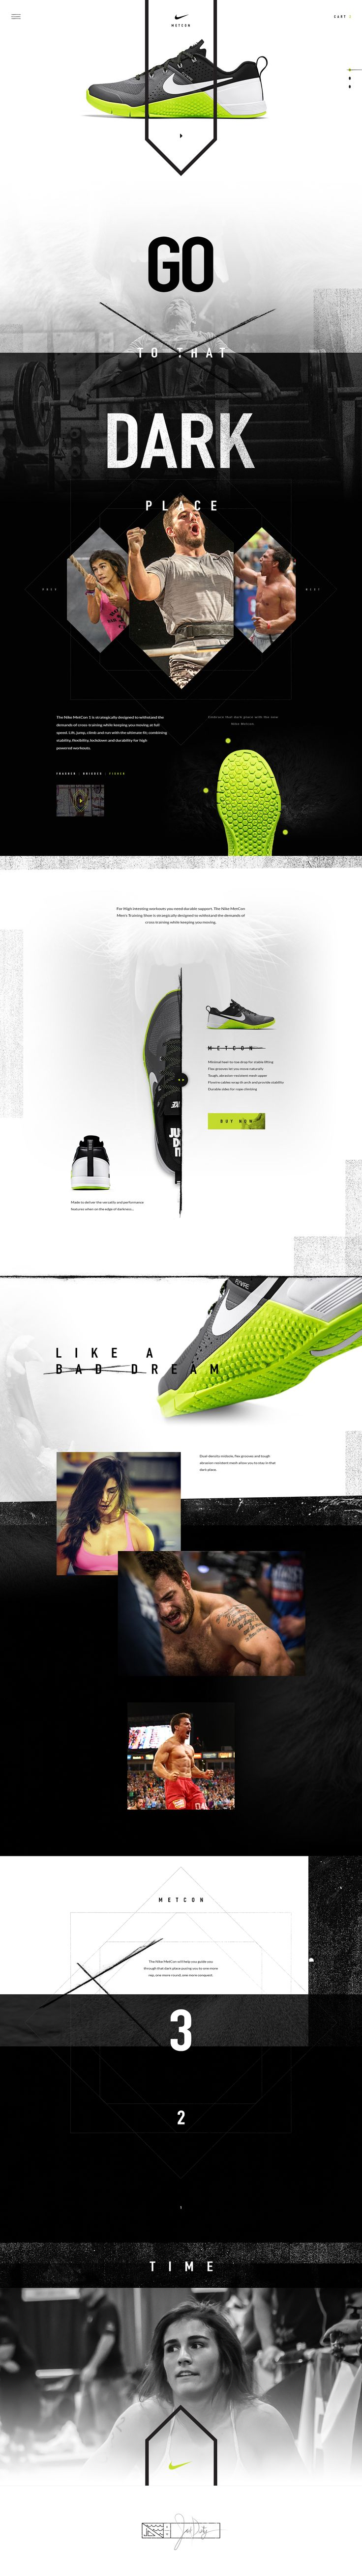 Nike Metcon: clean Ui design concept by Ben Johnson for Elegant Seagulls, on dribbble.